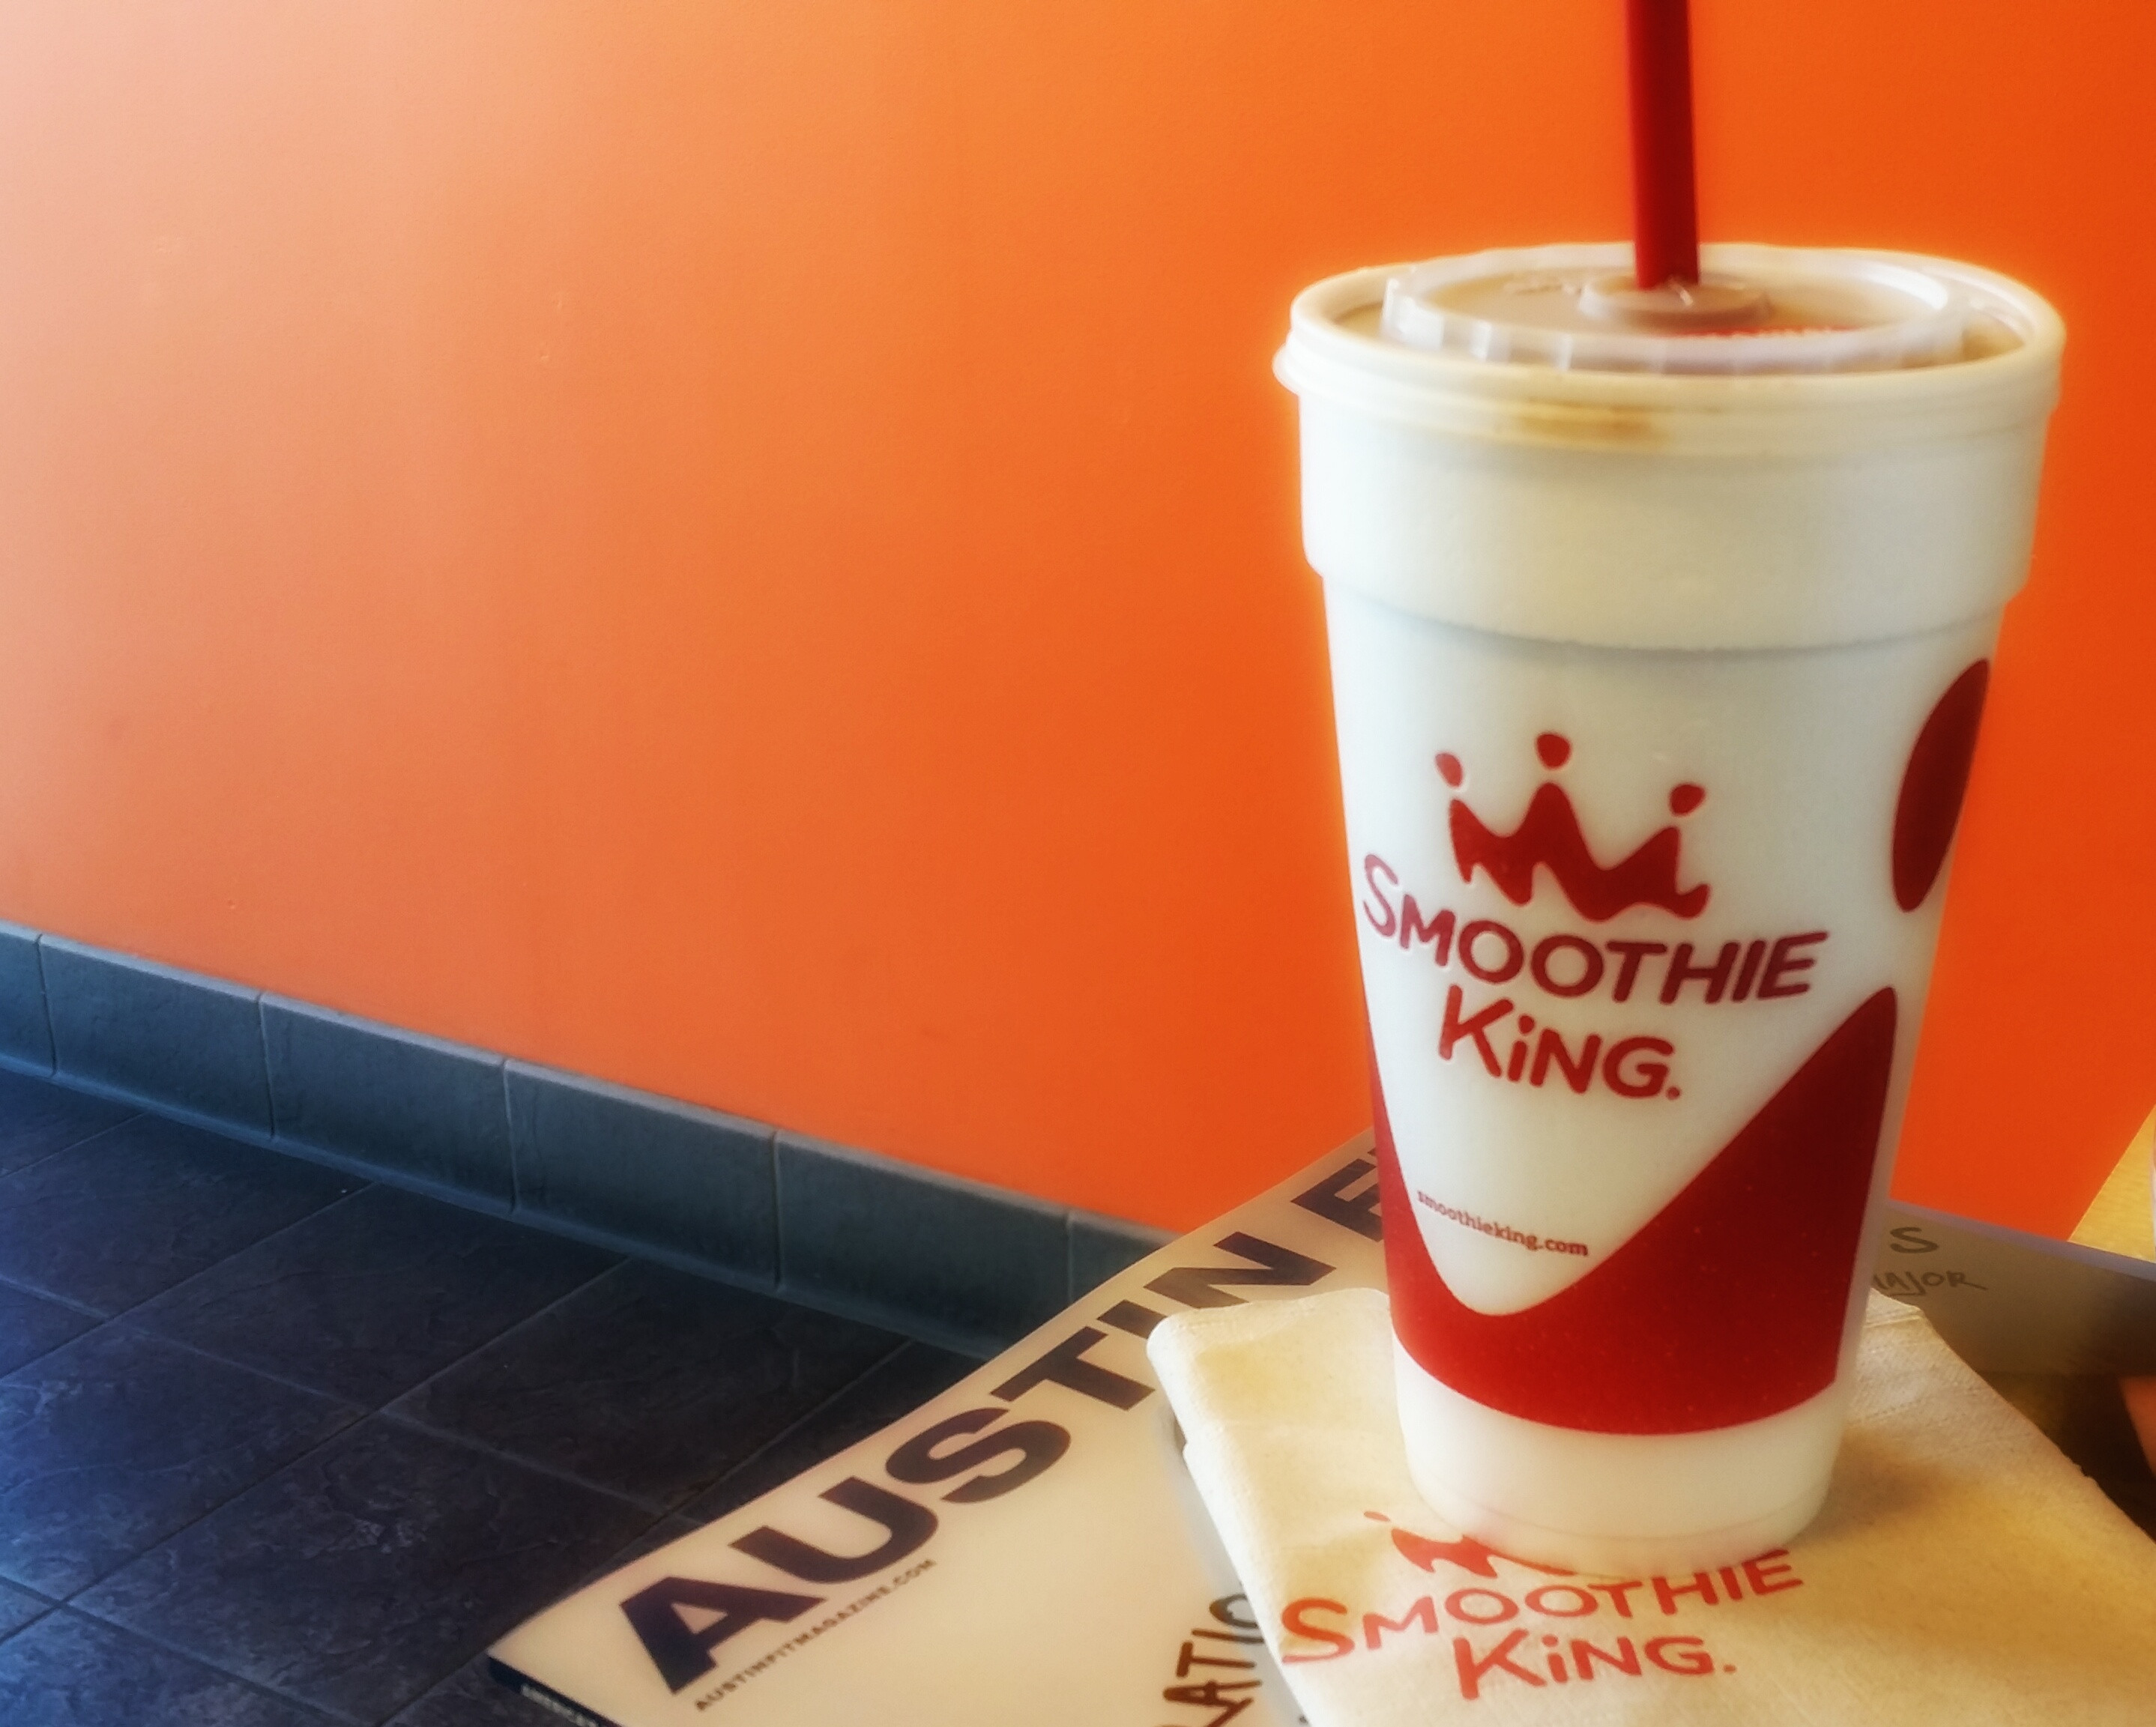 Healthy Smoothies At Smoothie King  Nutrition Facts Smoothie King Mango Kale Nutrition Ftempo